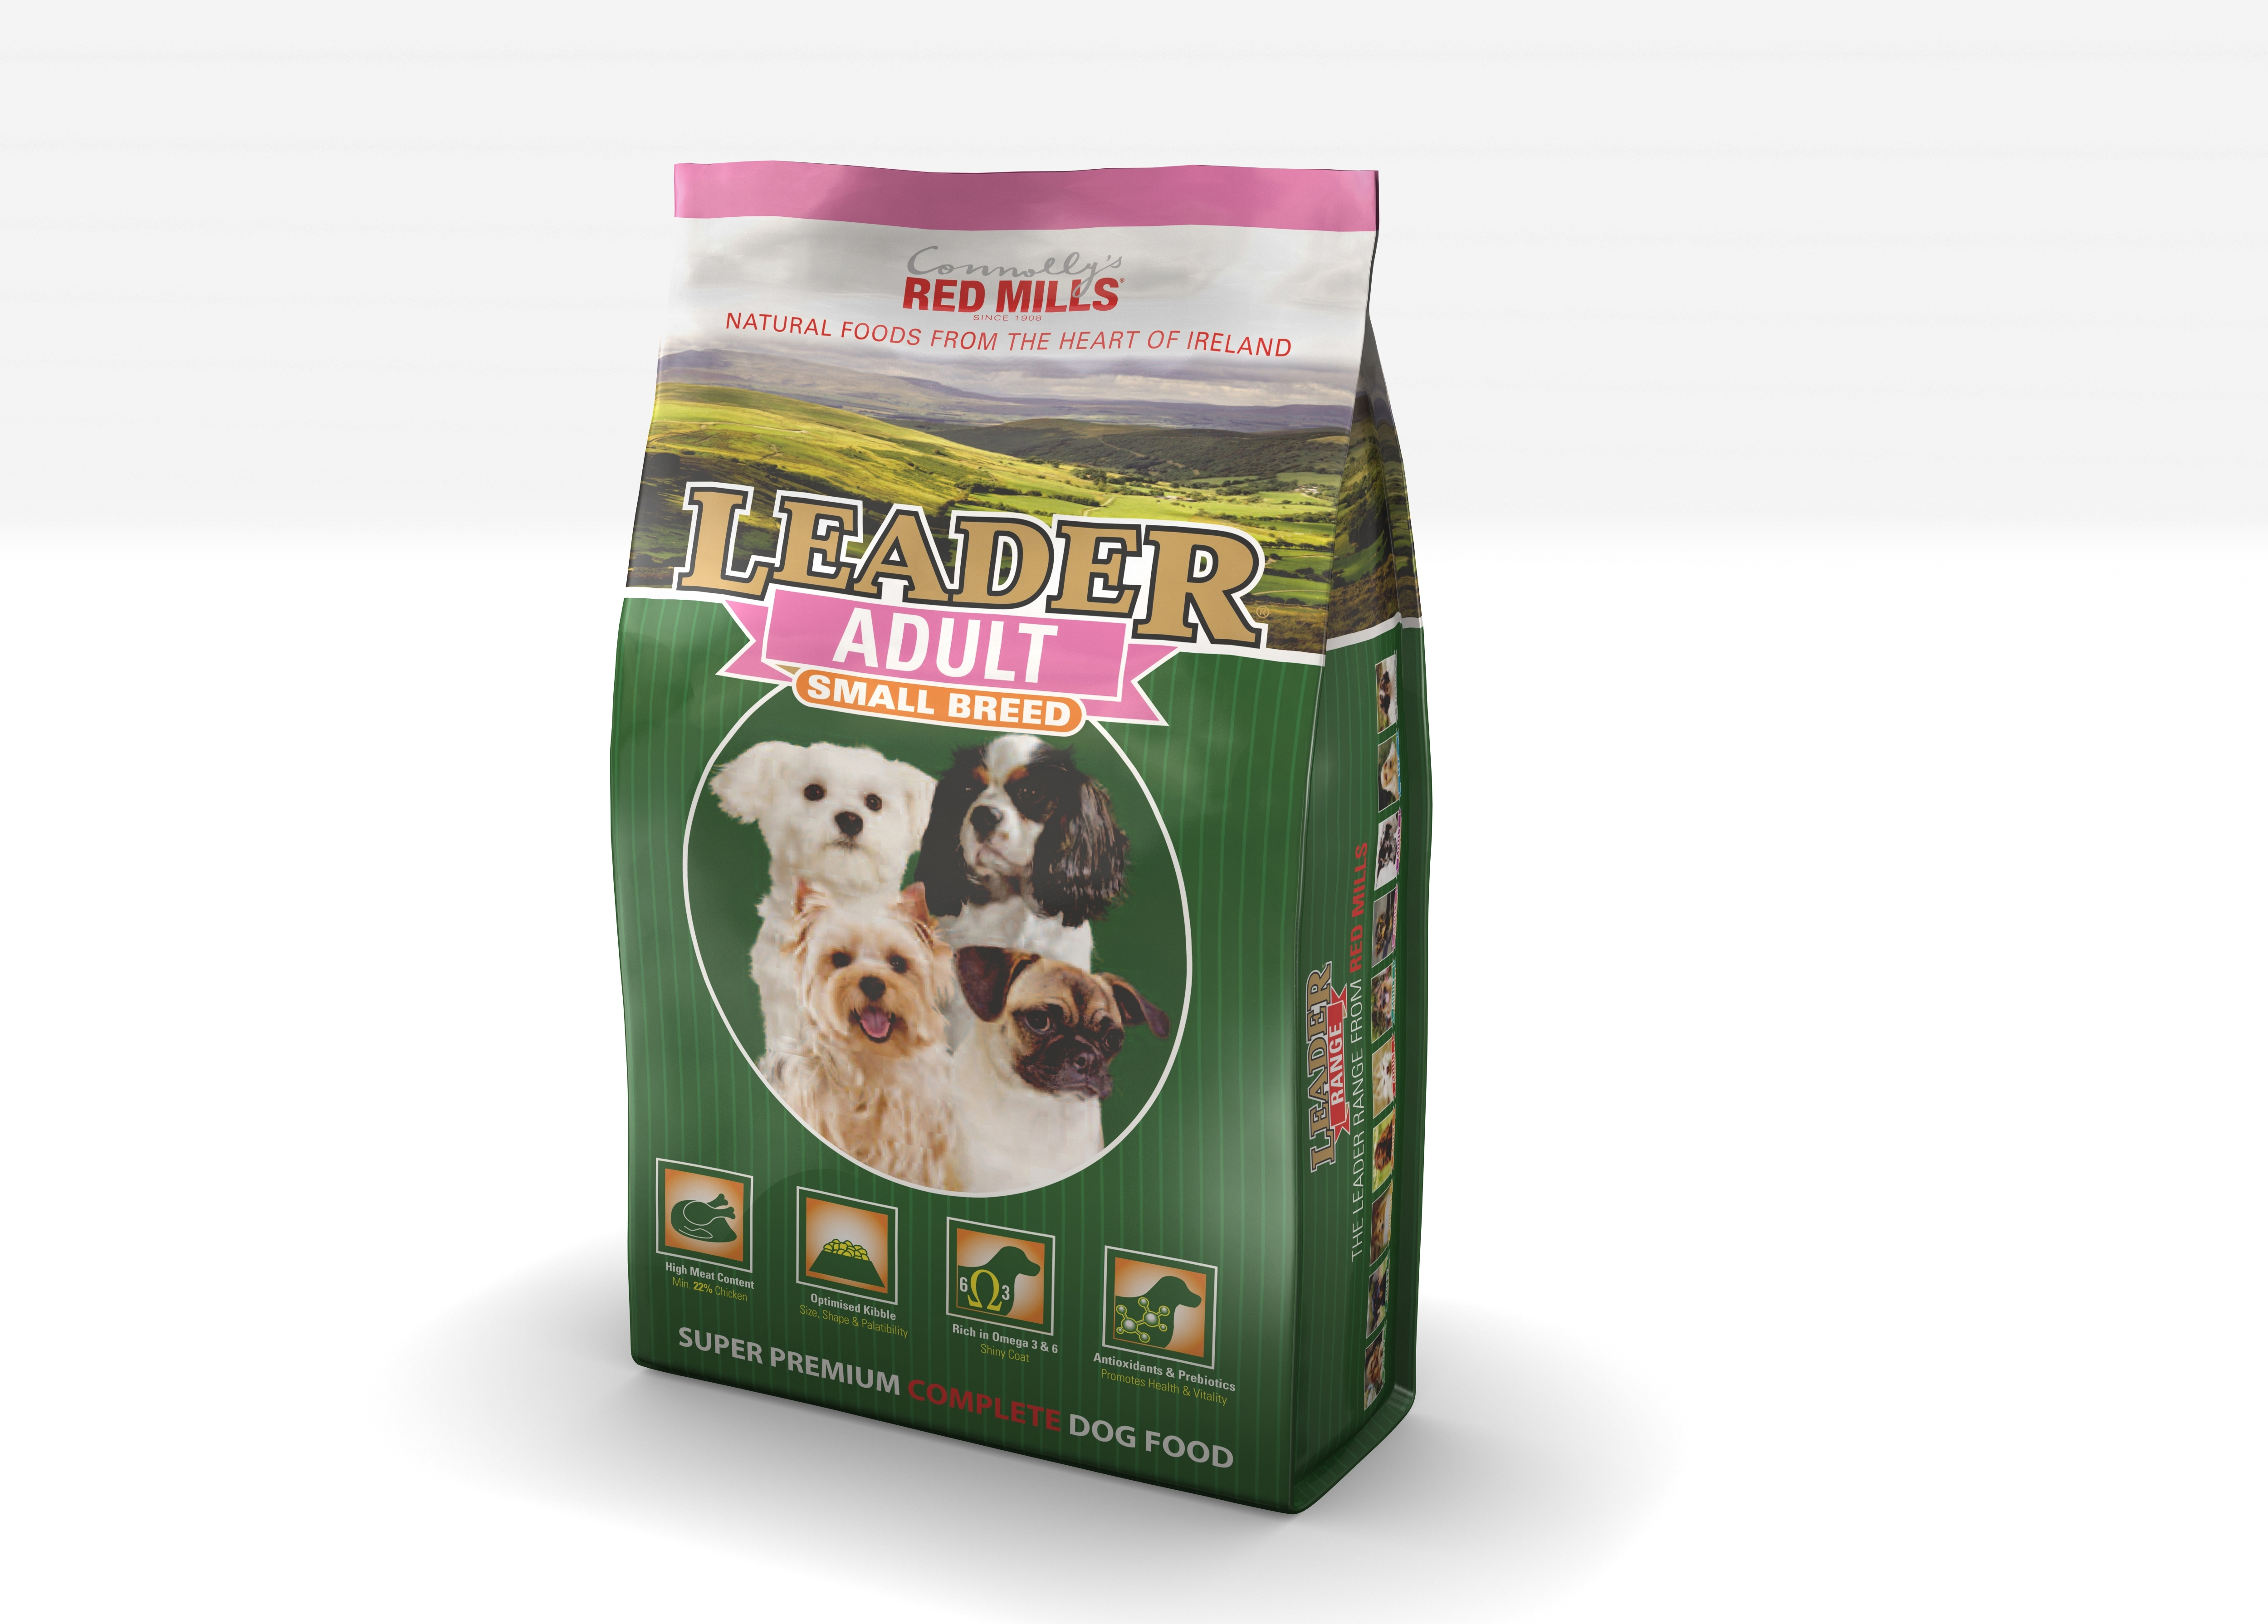 Connolly's Red Mills Leader Adult Small Breed Dog Food